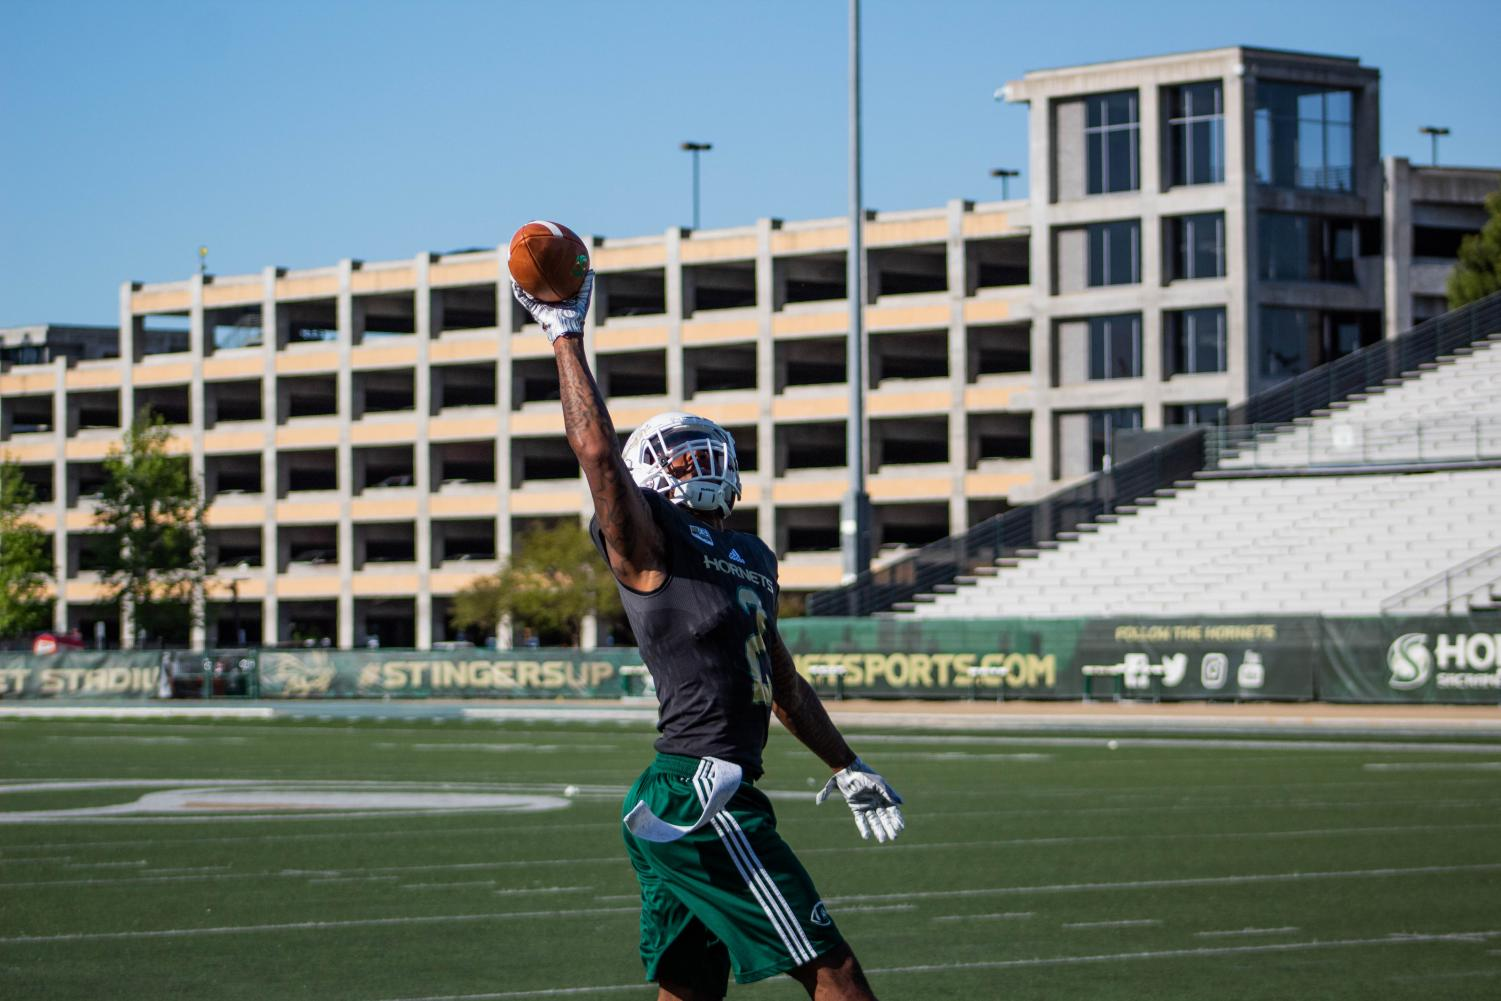 Sac+State+senior+safety+Mister+Harriel+catches+a+pass+with+one-hand+April+18+at+Hornet+Stadium.+Harriel+is+hopeful+to+be+selected+in+the+2019+NFL+Draft.